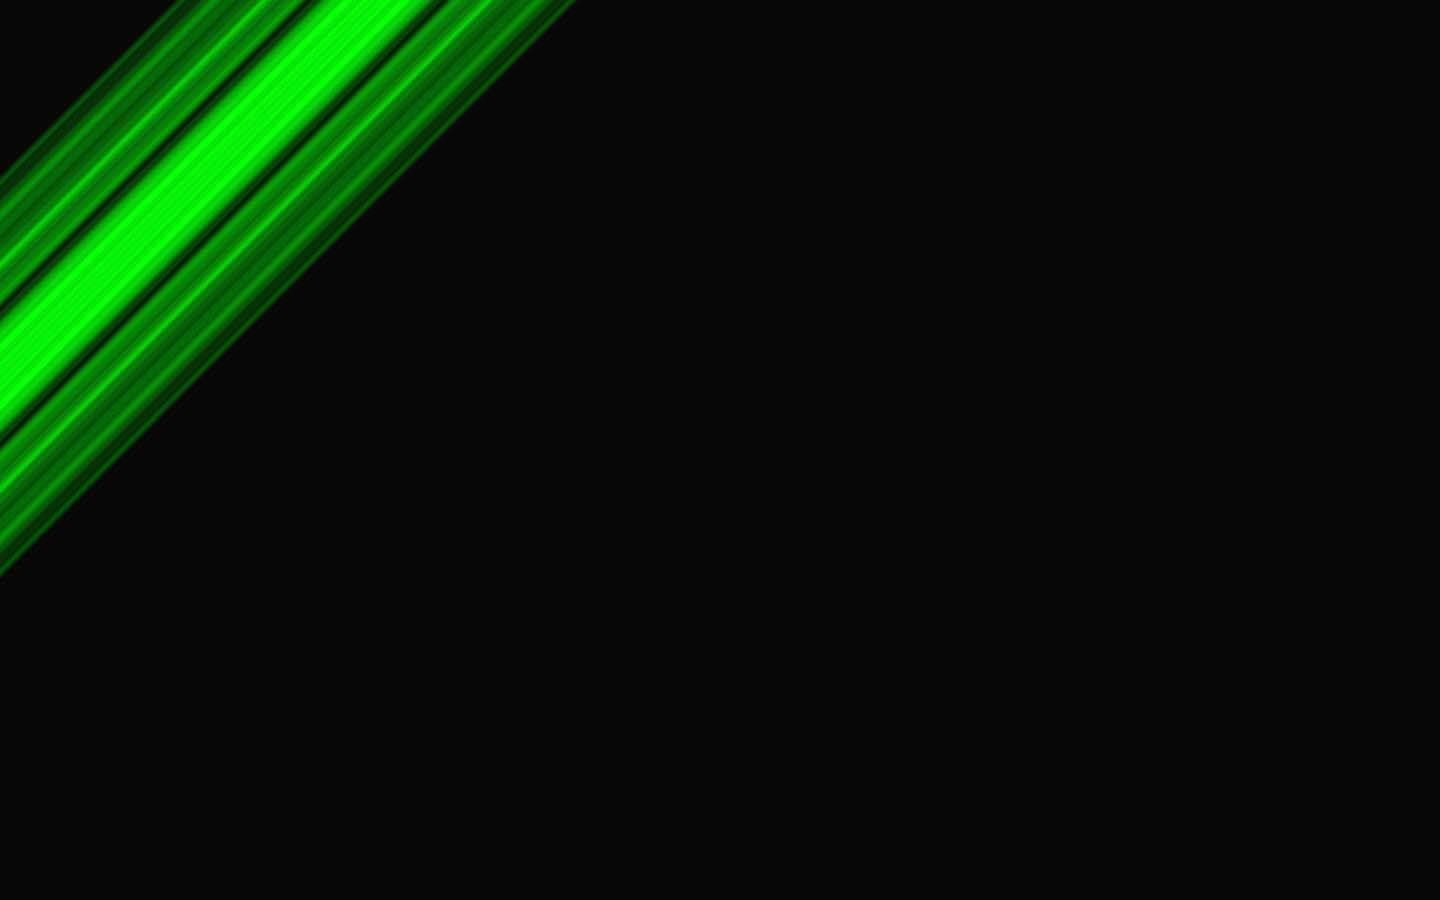 Lime Green Abstract Wallpaper